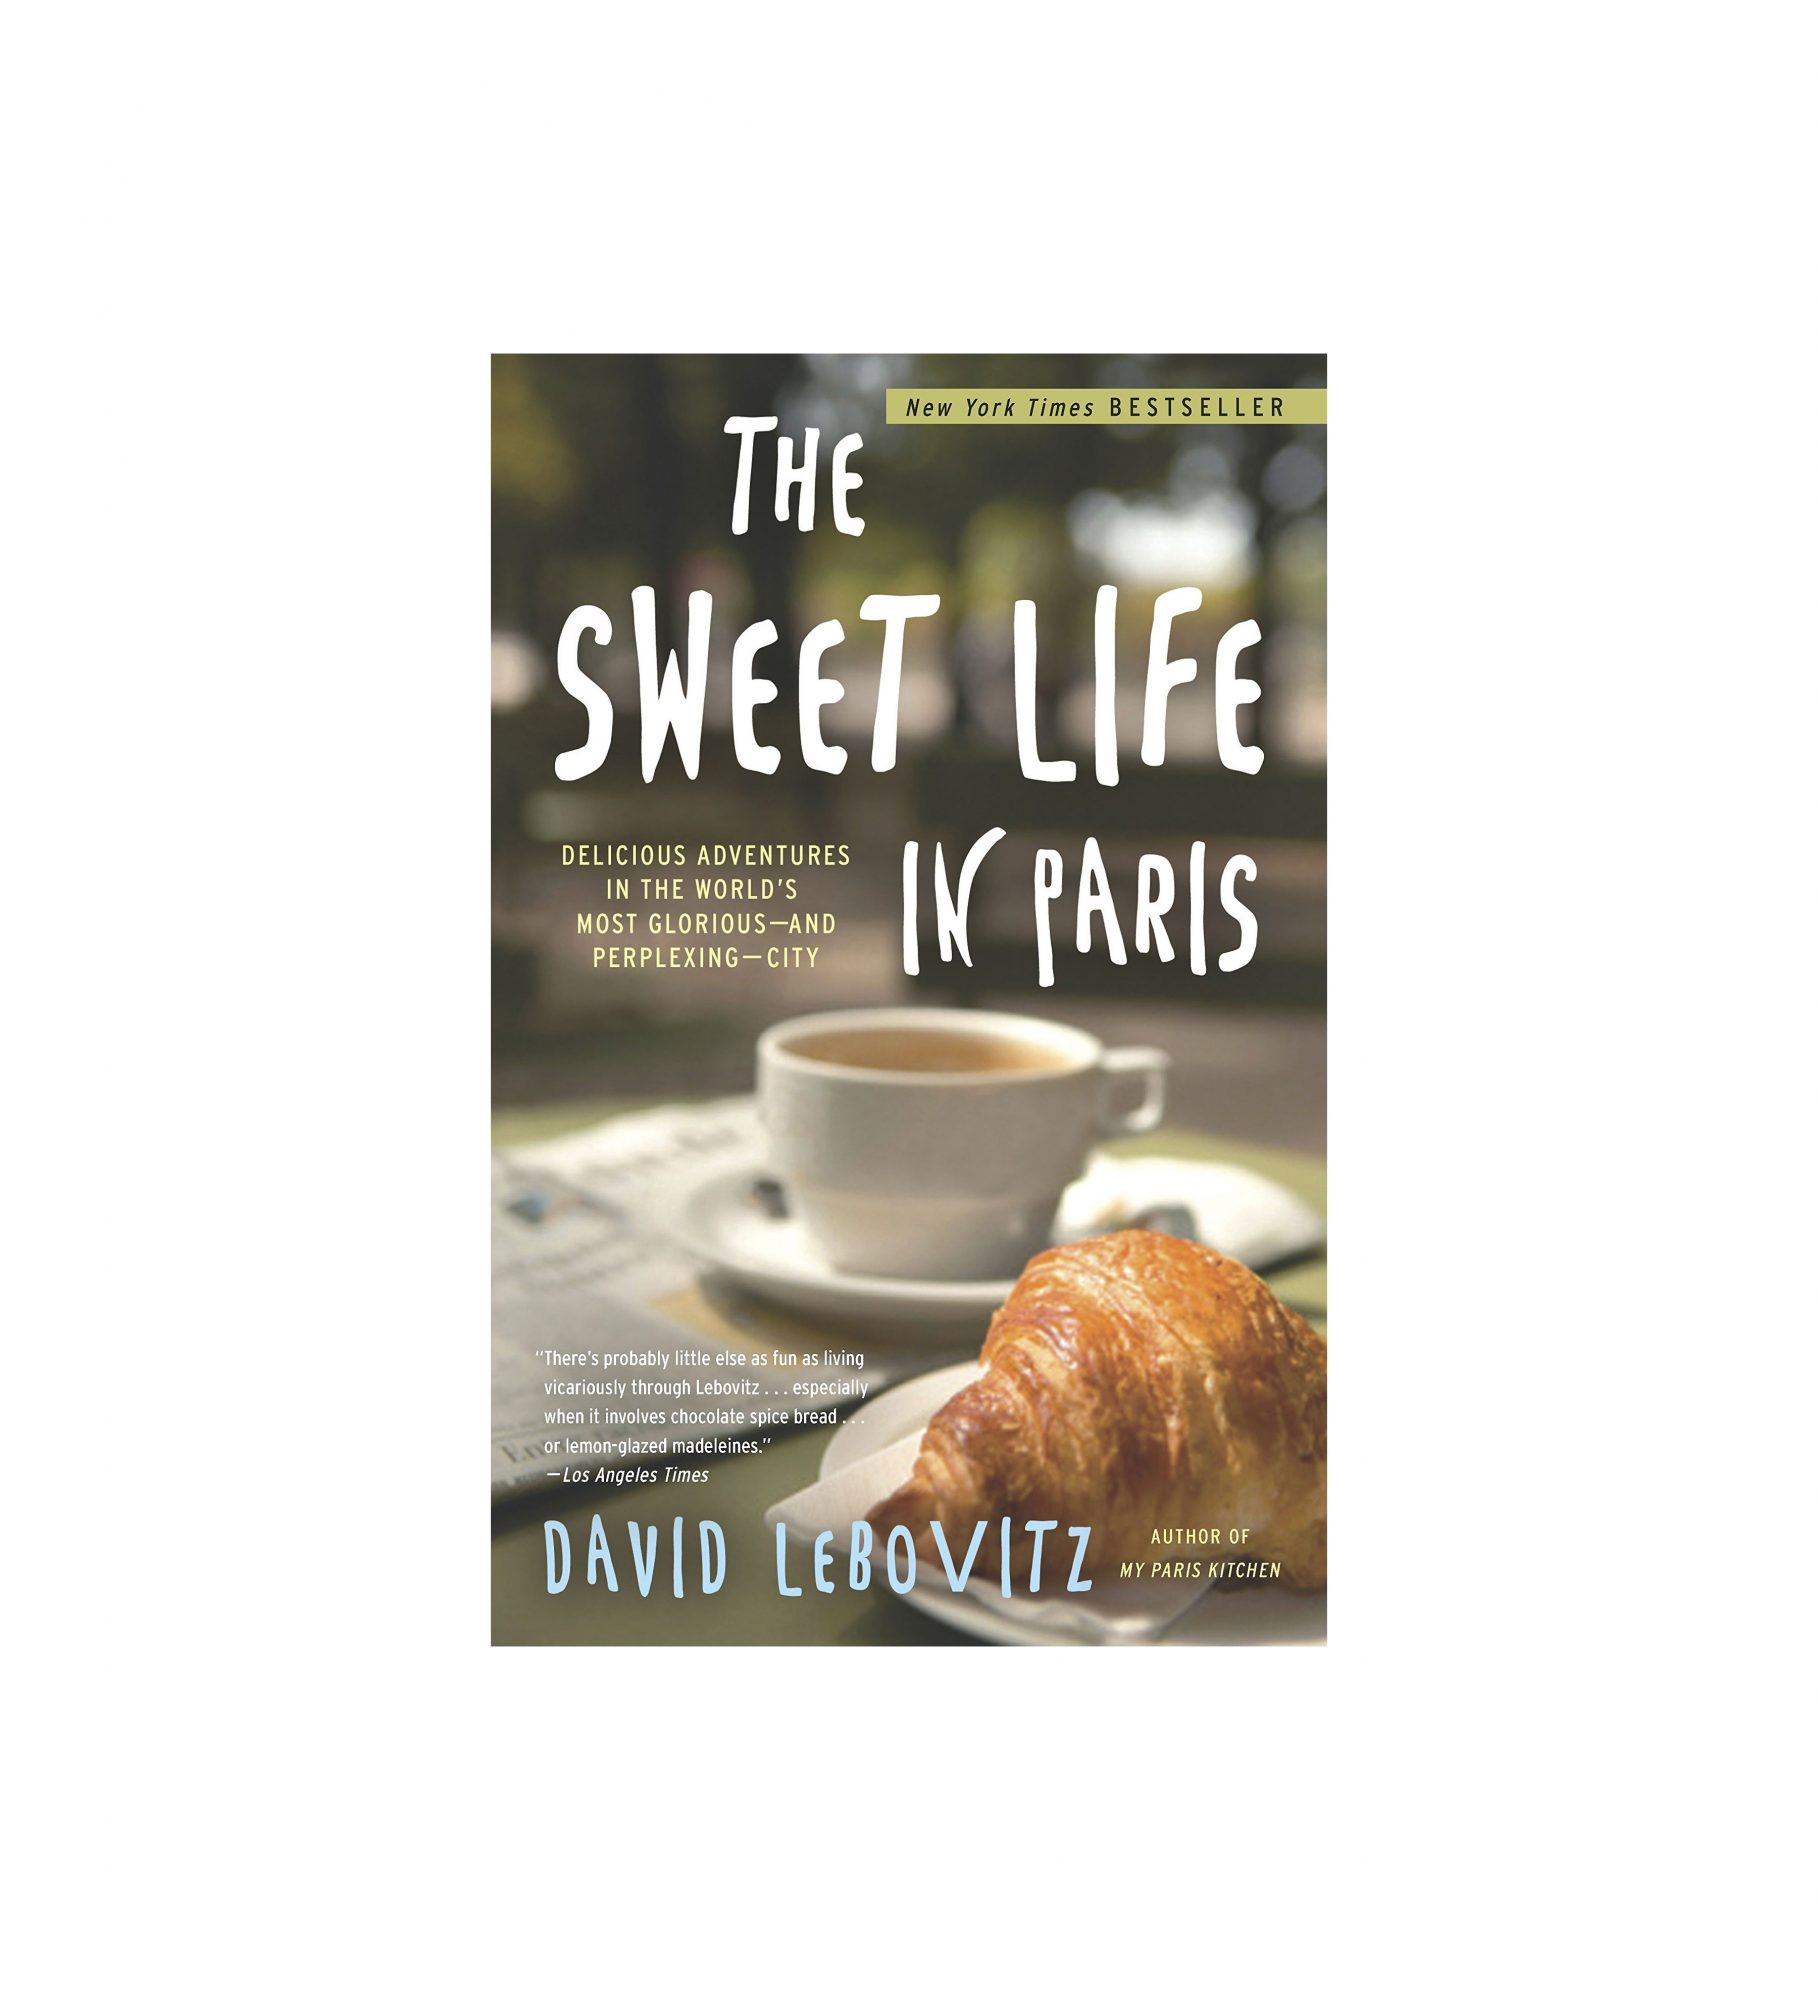 The Sweet Life in Paris: Delicious Adventures in the World's Most Glorious—and Perplexing—City, by David Lebovitz